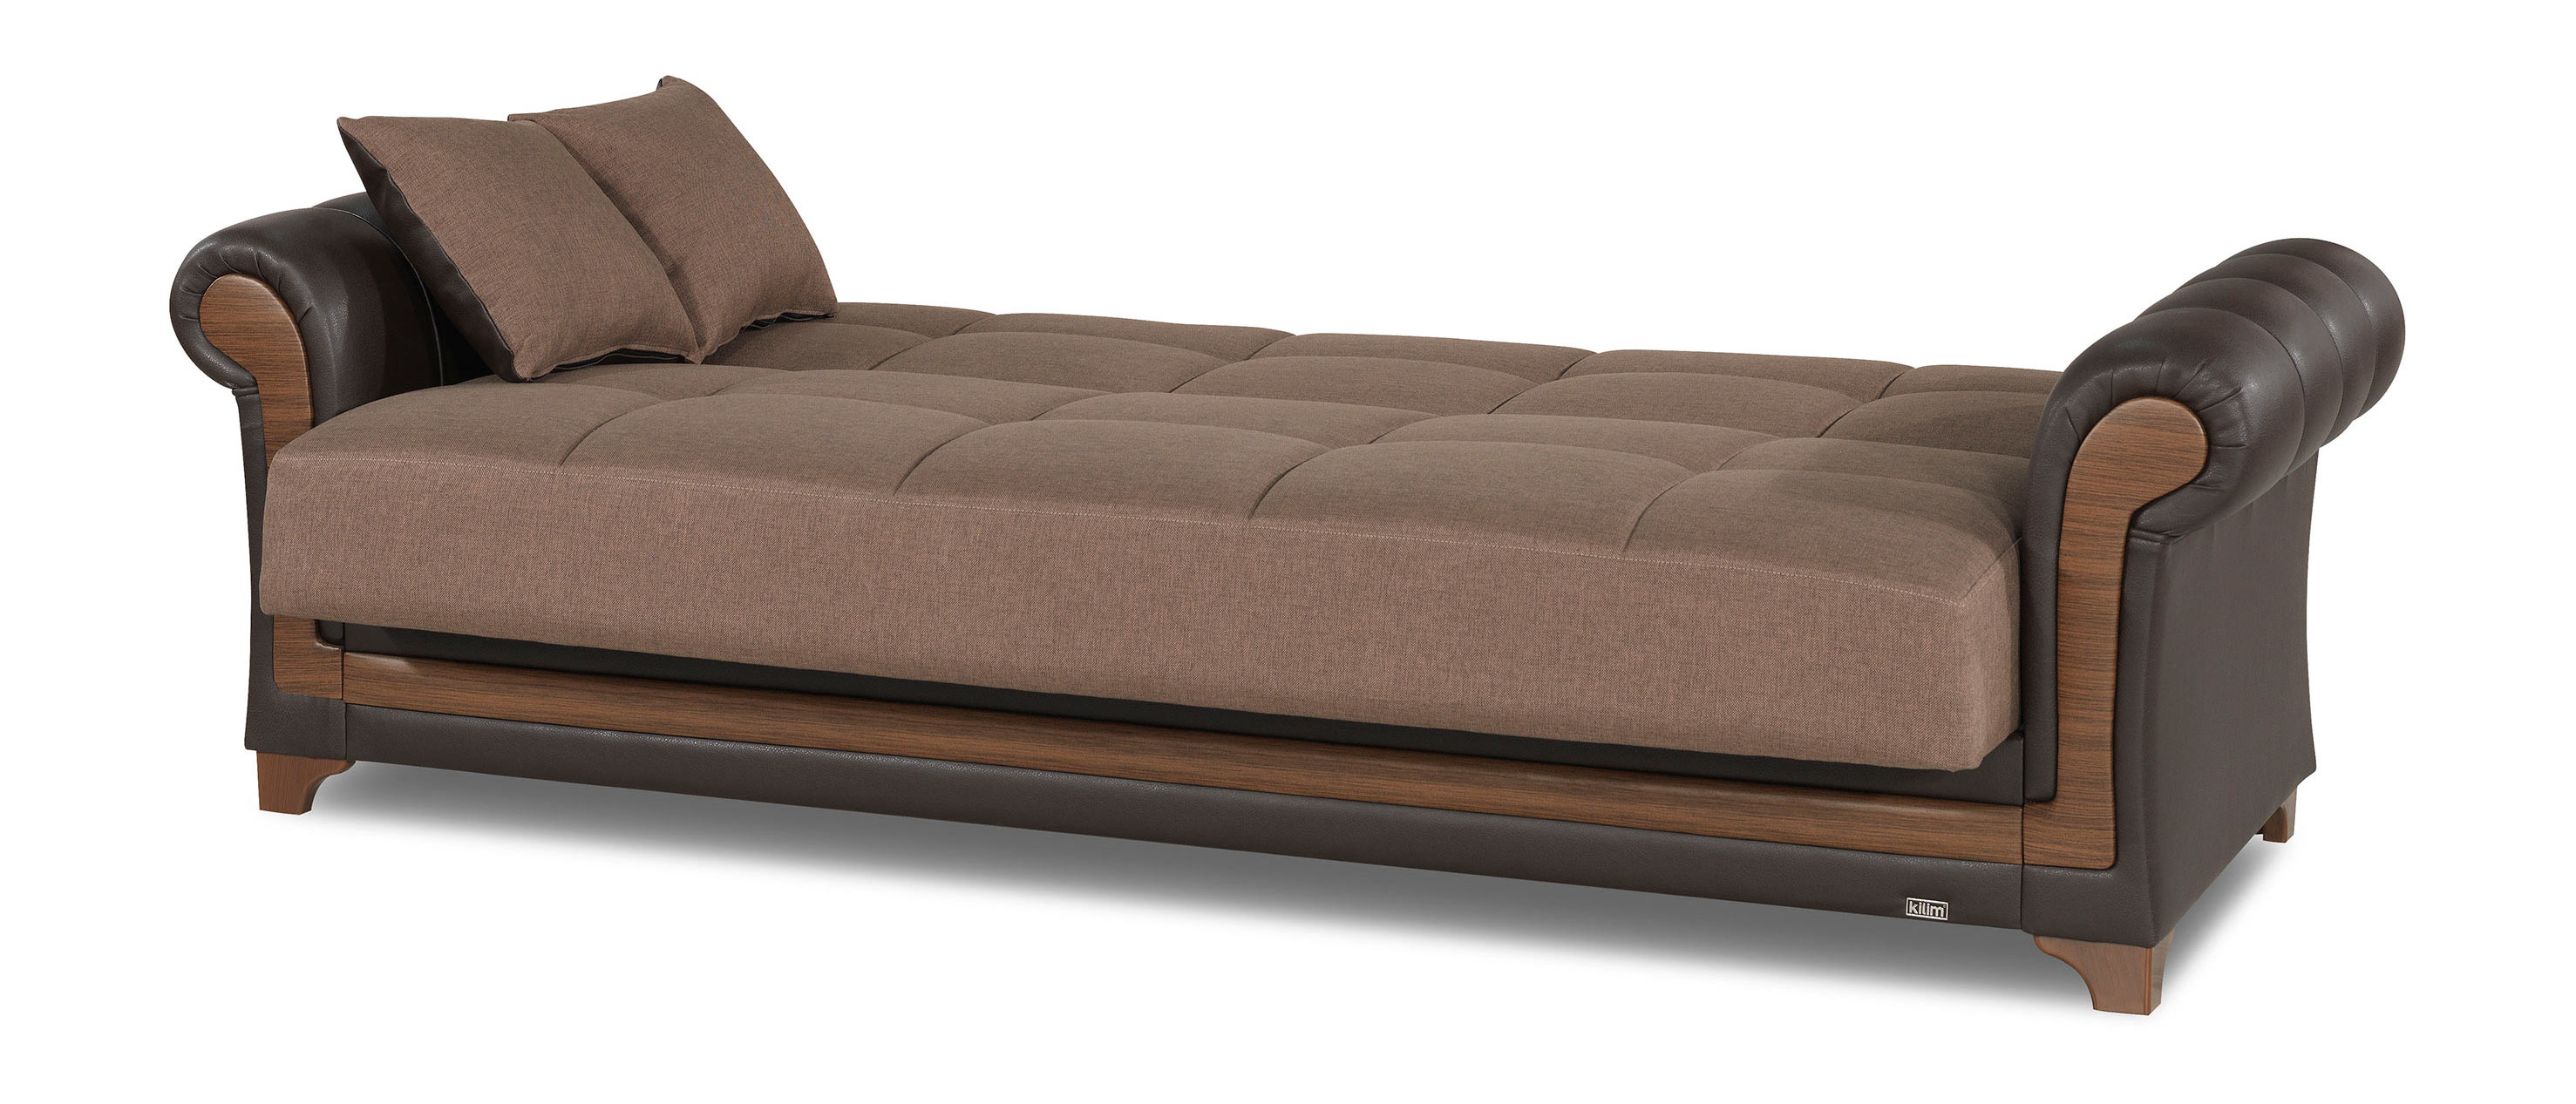 dream sofa bed knoll reproduction decor brown convertible by casamode